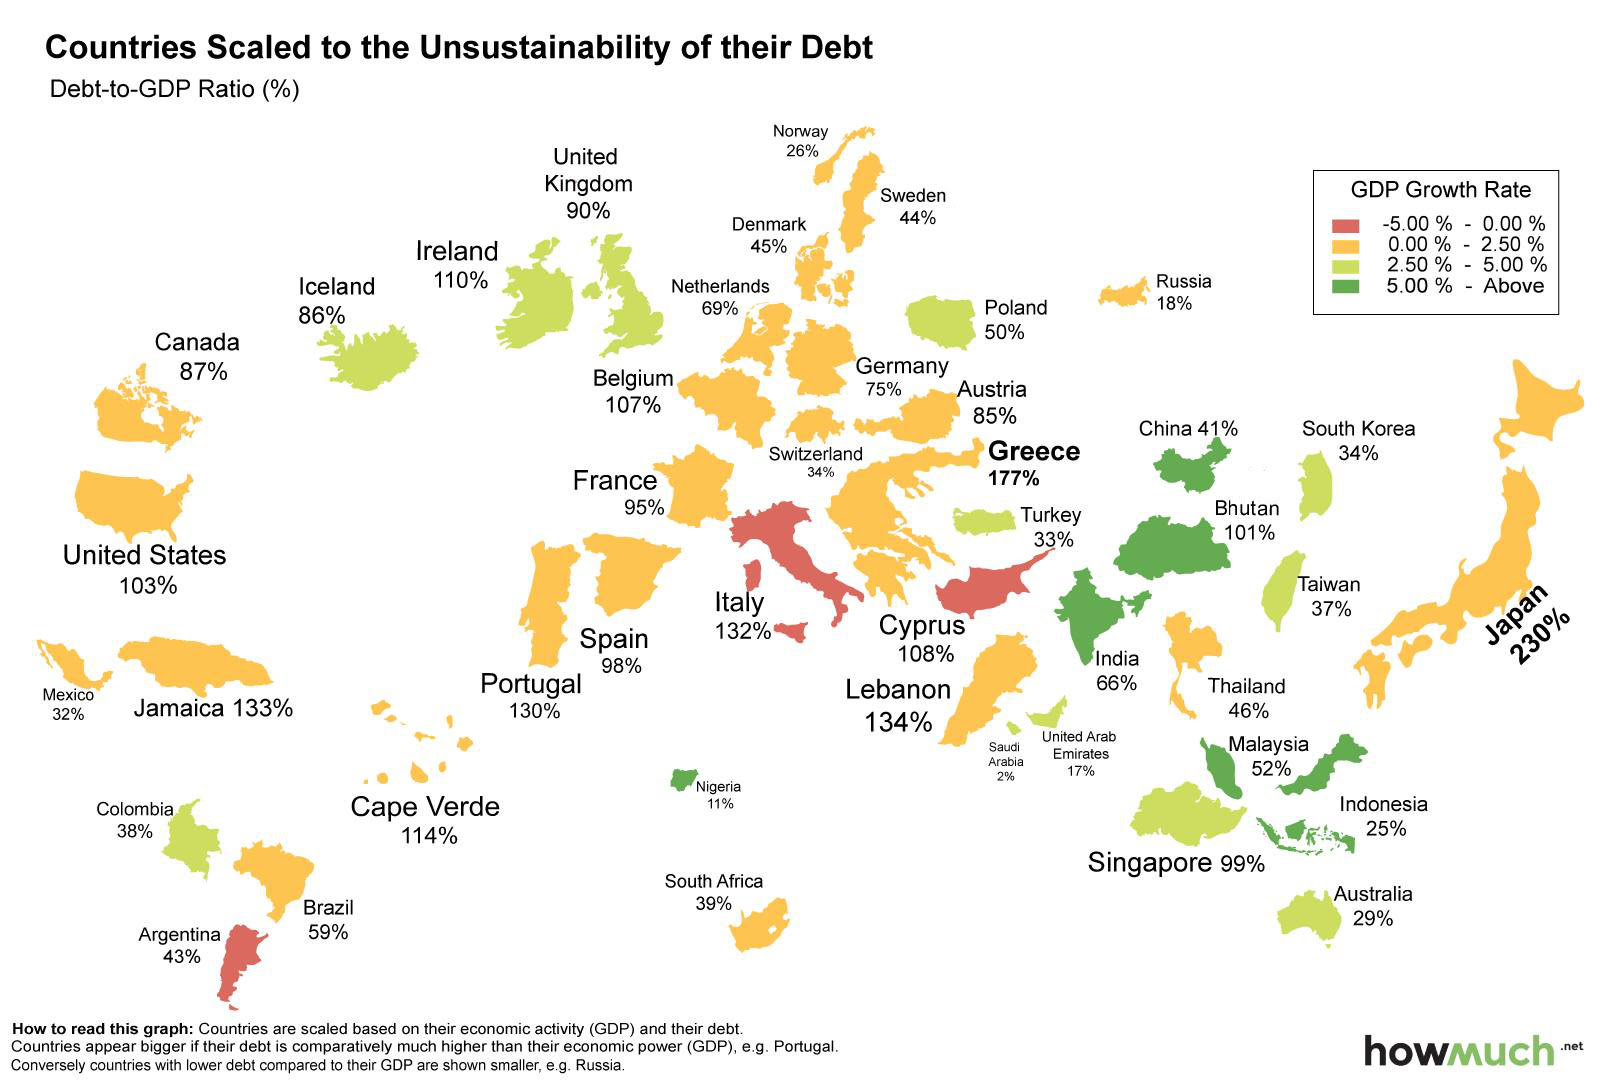 http://www.ritholtz.com/blog/2015/11/the-world-map-of-debt/